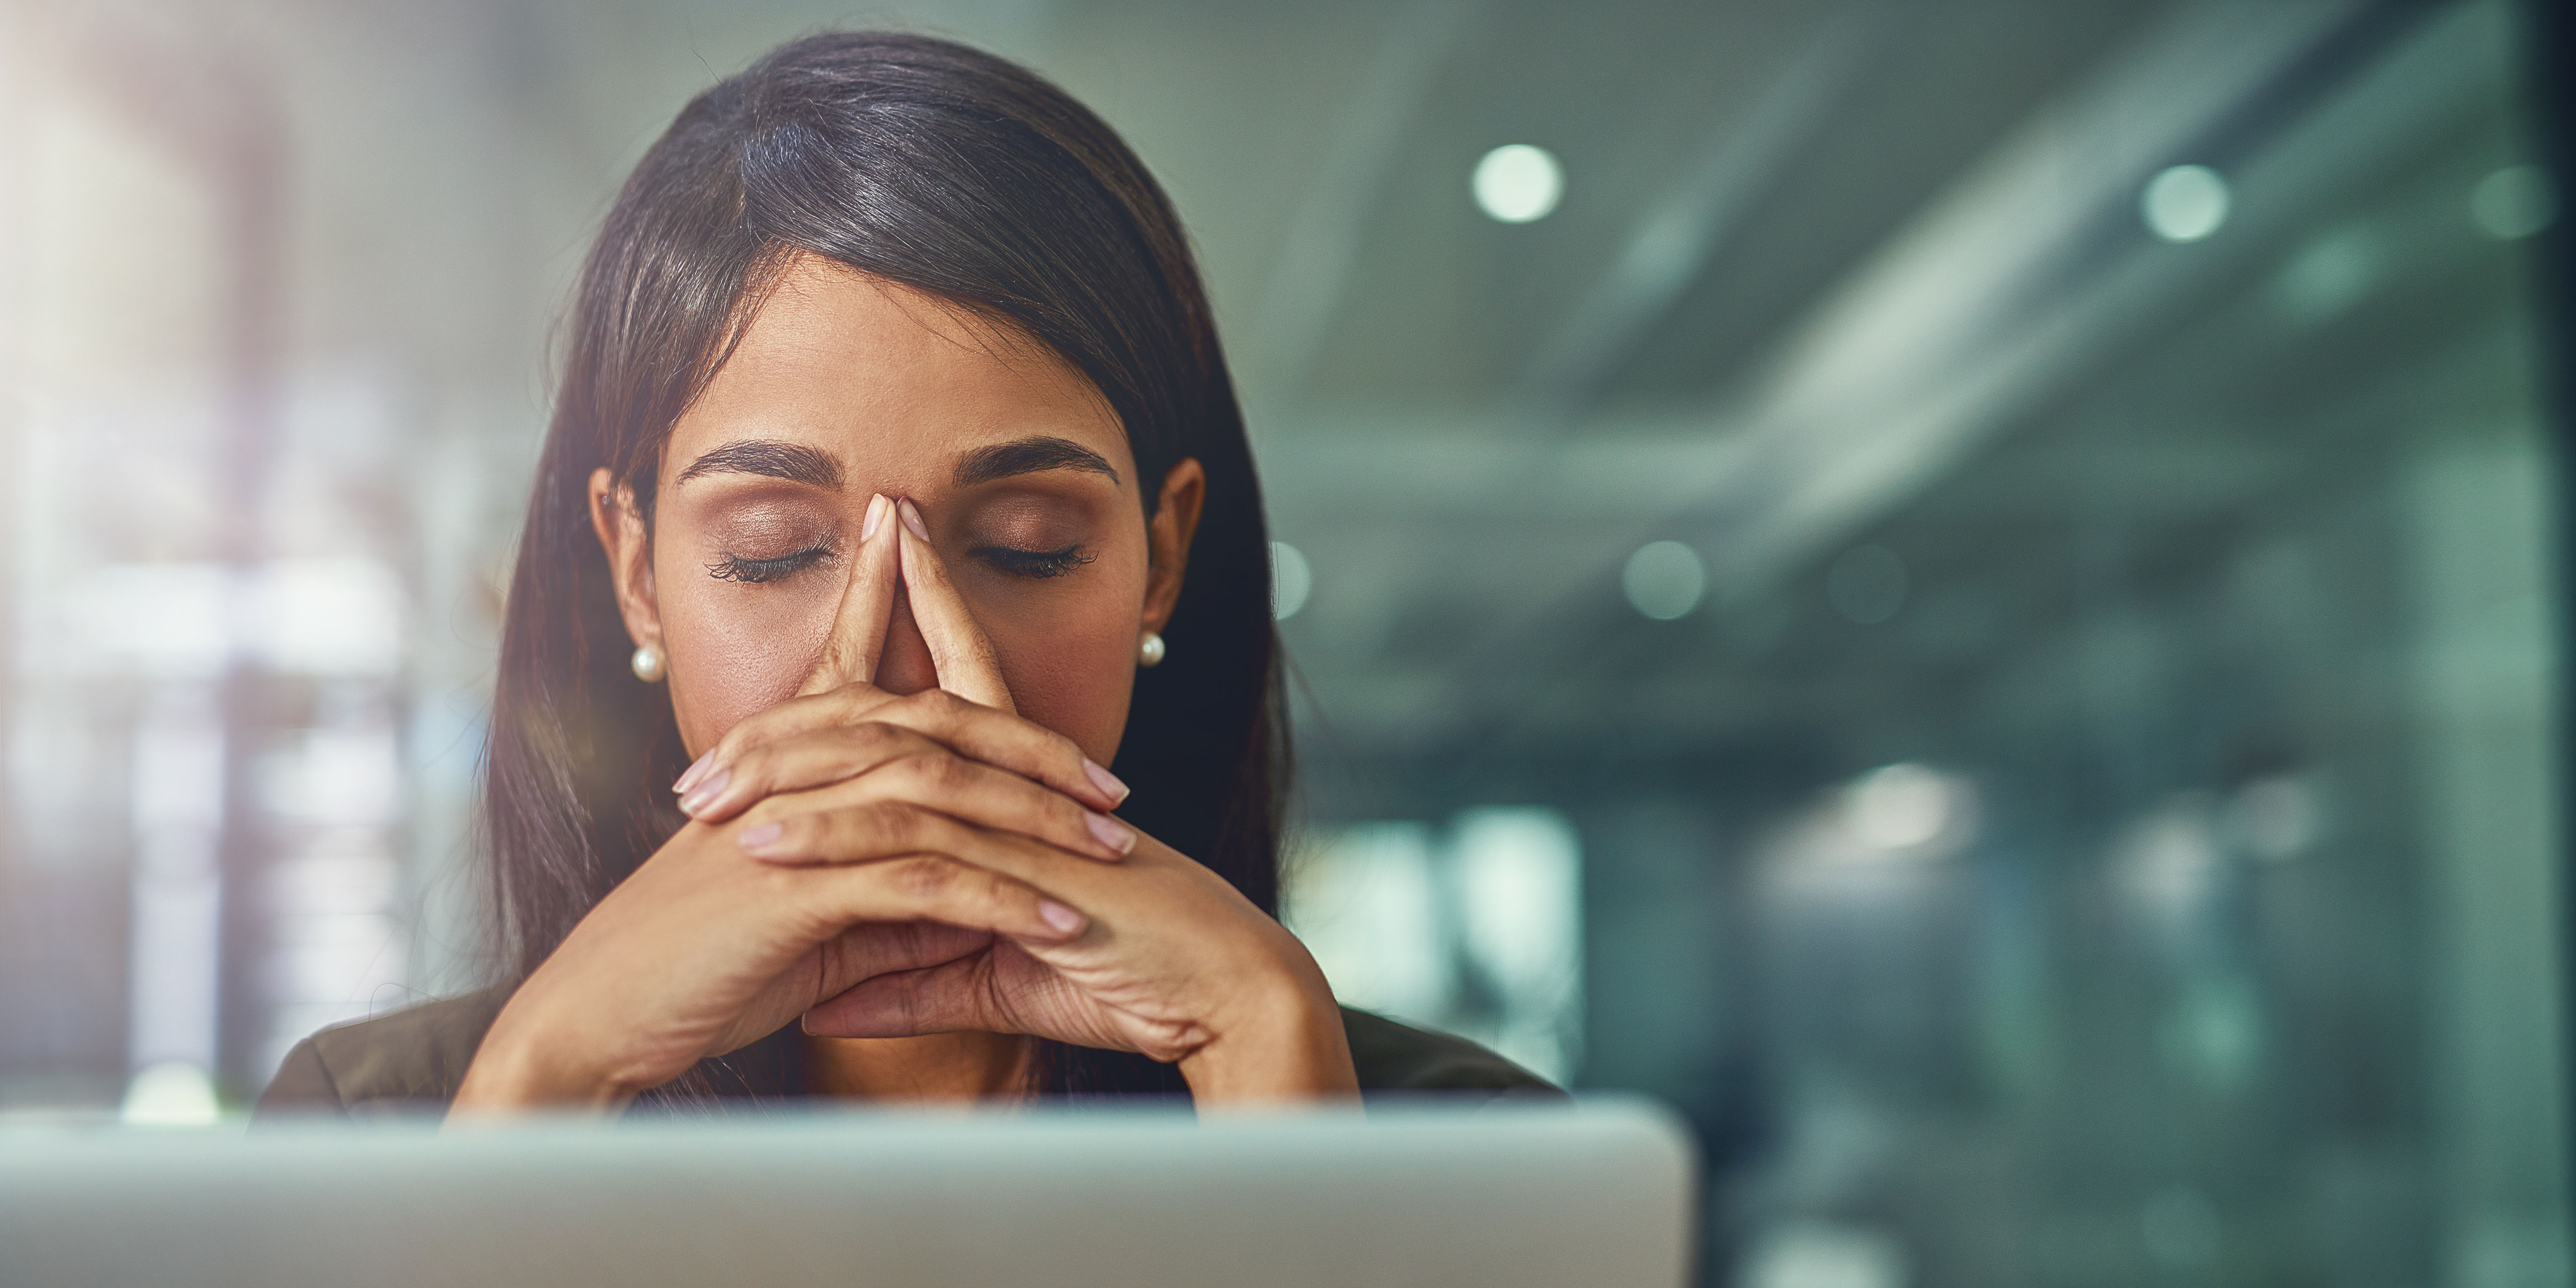 Managing symptoms of stress in chaotic times